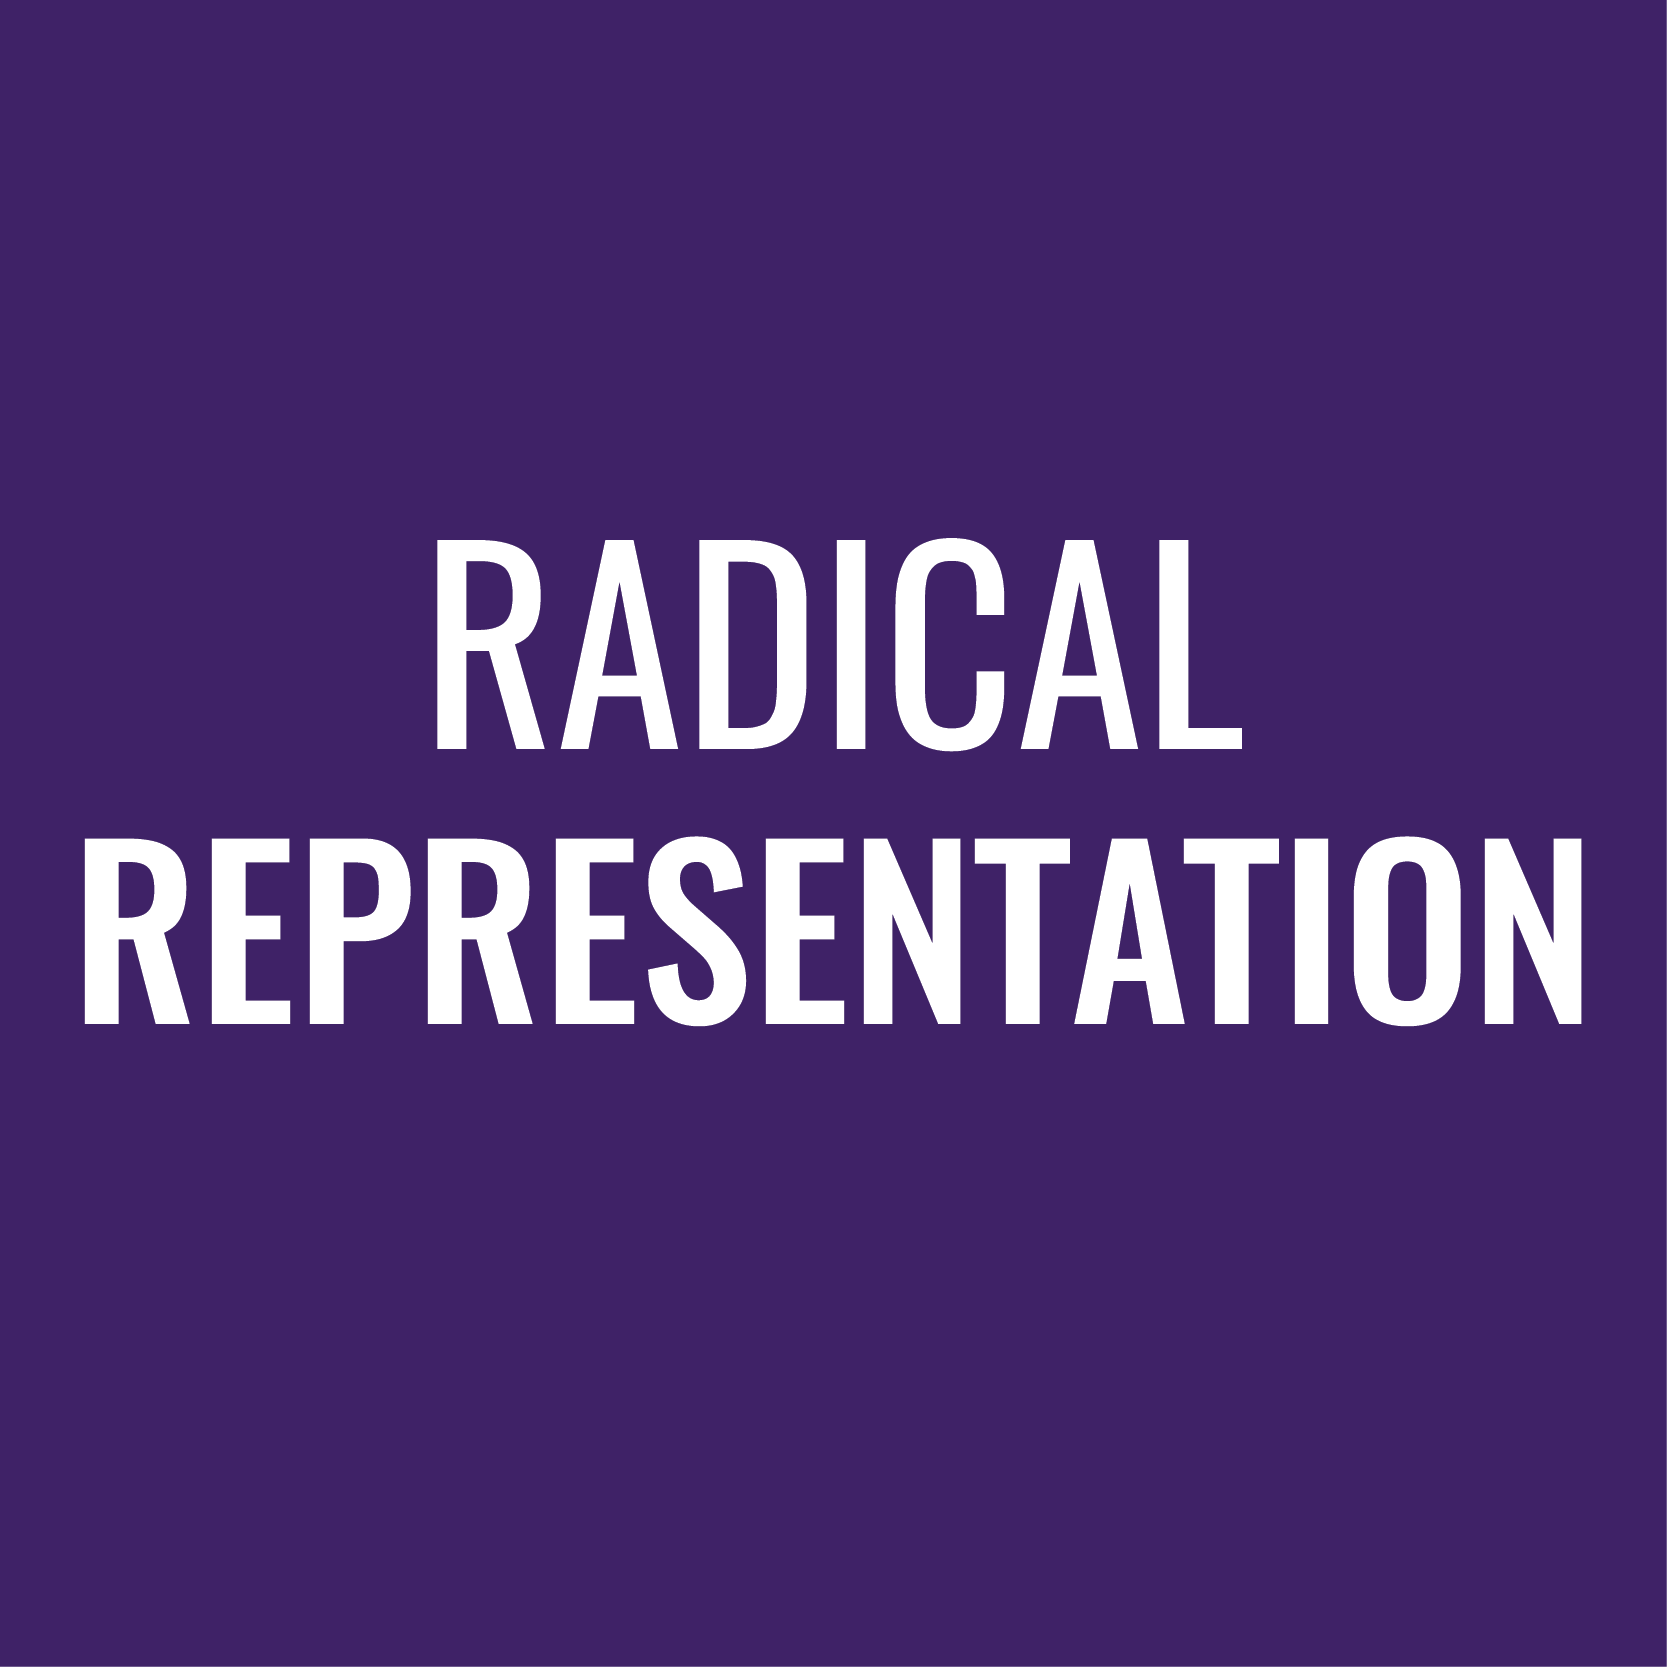 Radical Representation-01.png